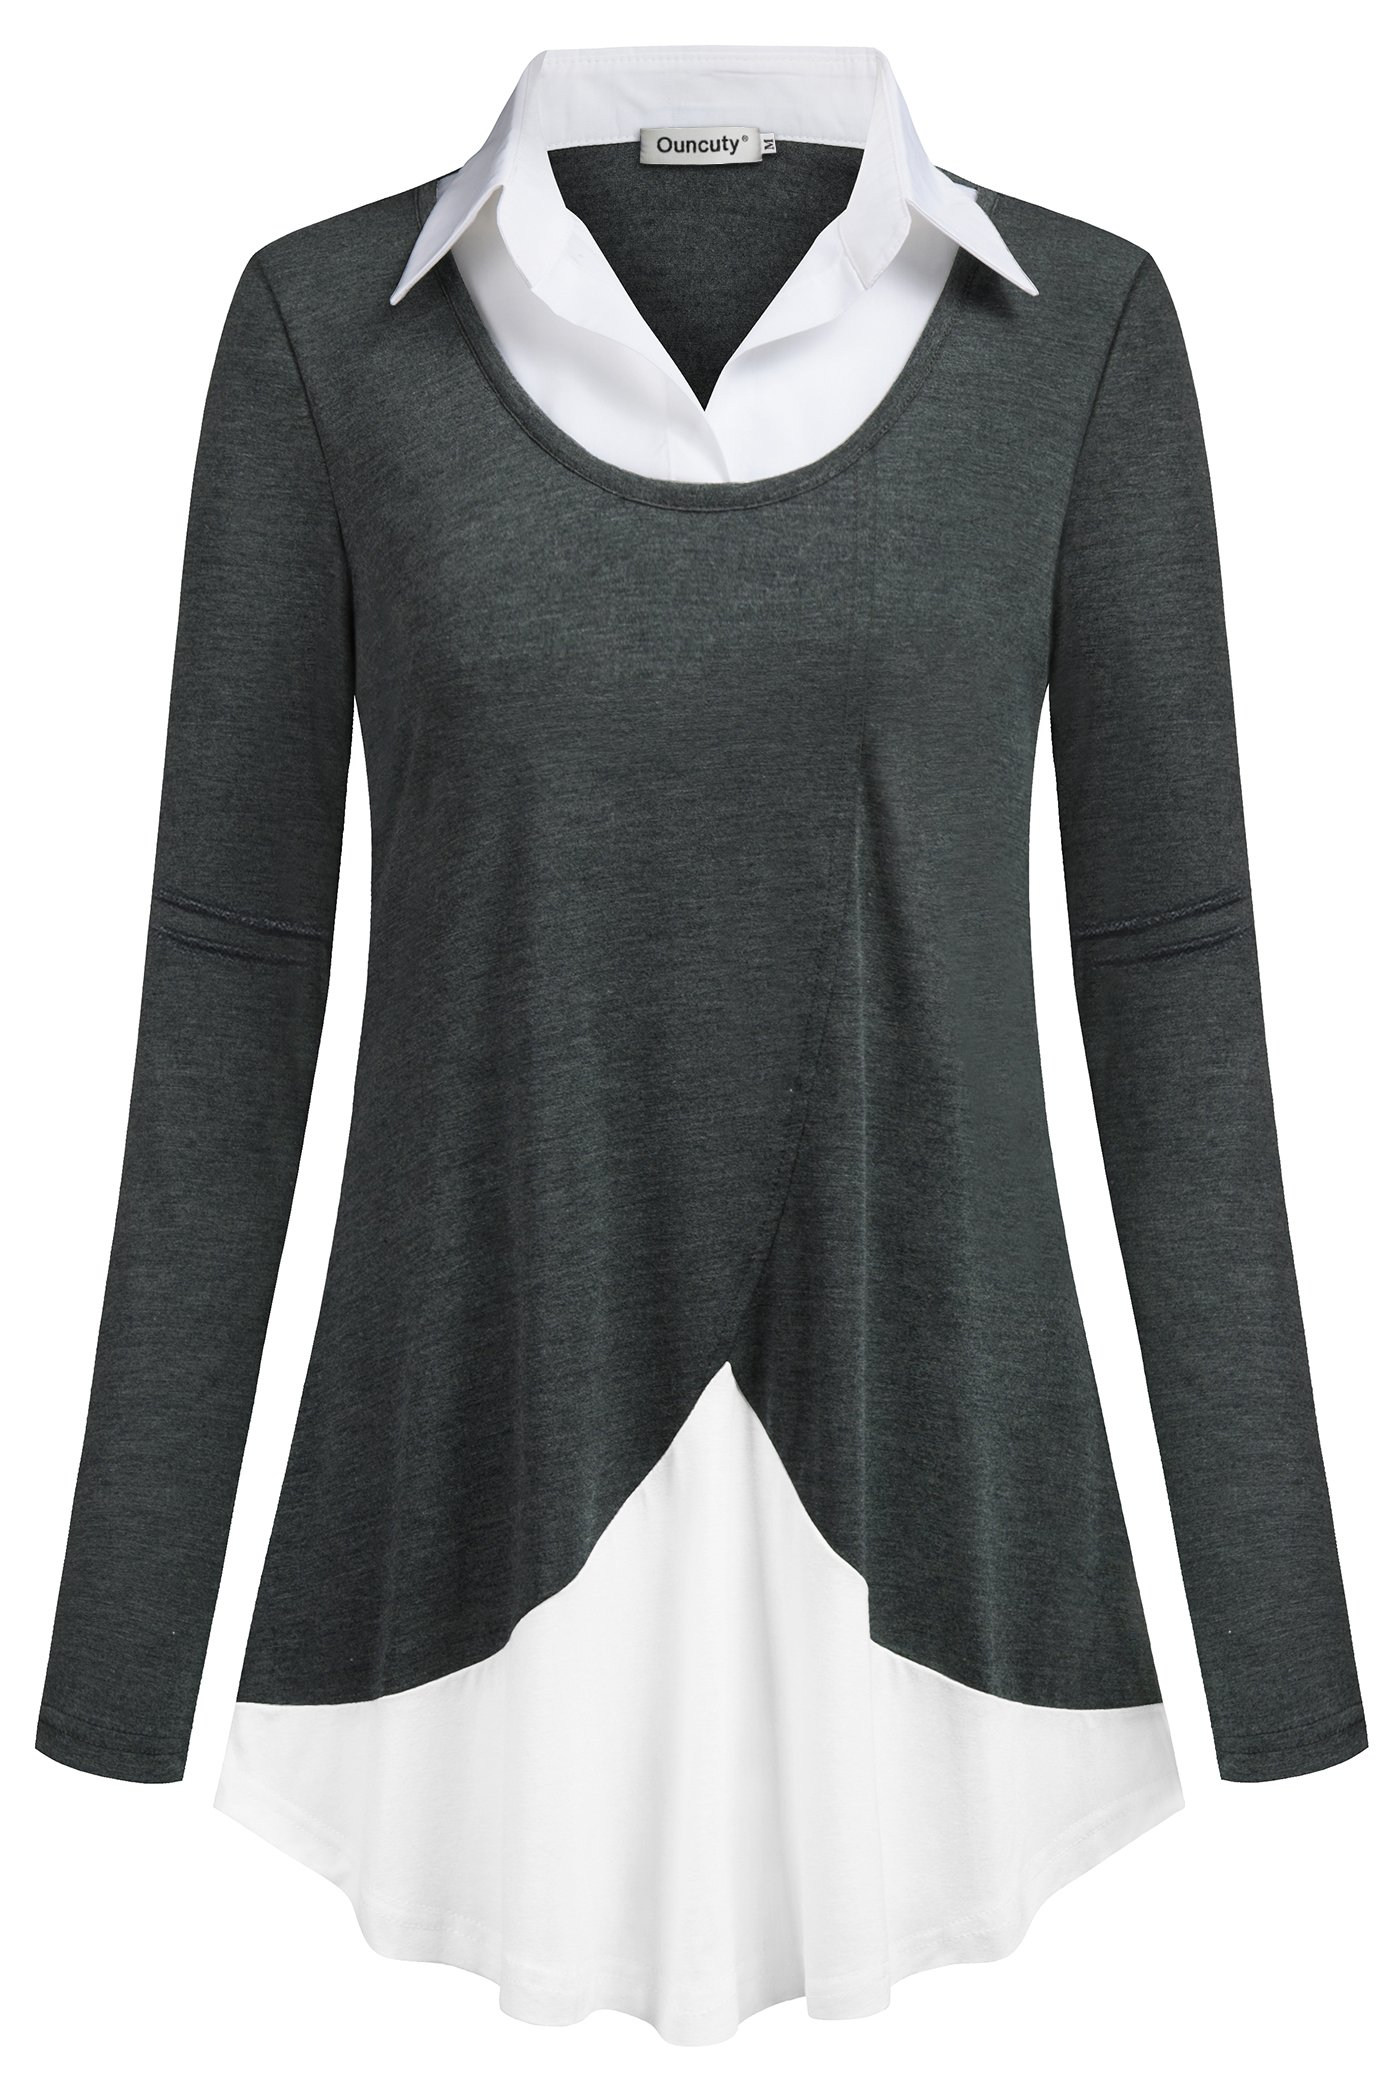 Ouncuty Business Casual Blouse for Women, Ladies OL Decent Button Down Patchwork Neck Long Sleeves Ruffled Stretchy Hem Lightweight Fit and Flare Flow 2 in 1 Pullover Tops for Meetting Outdoor Grey L